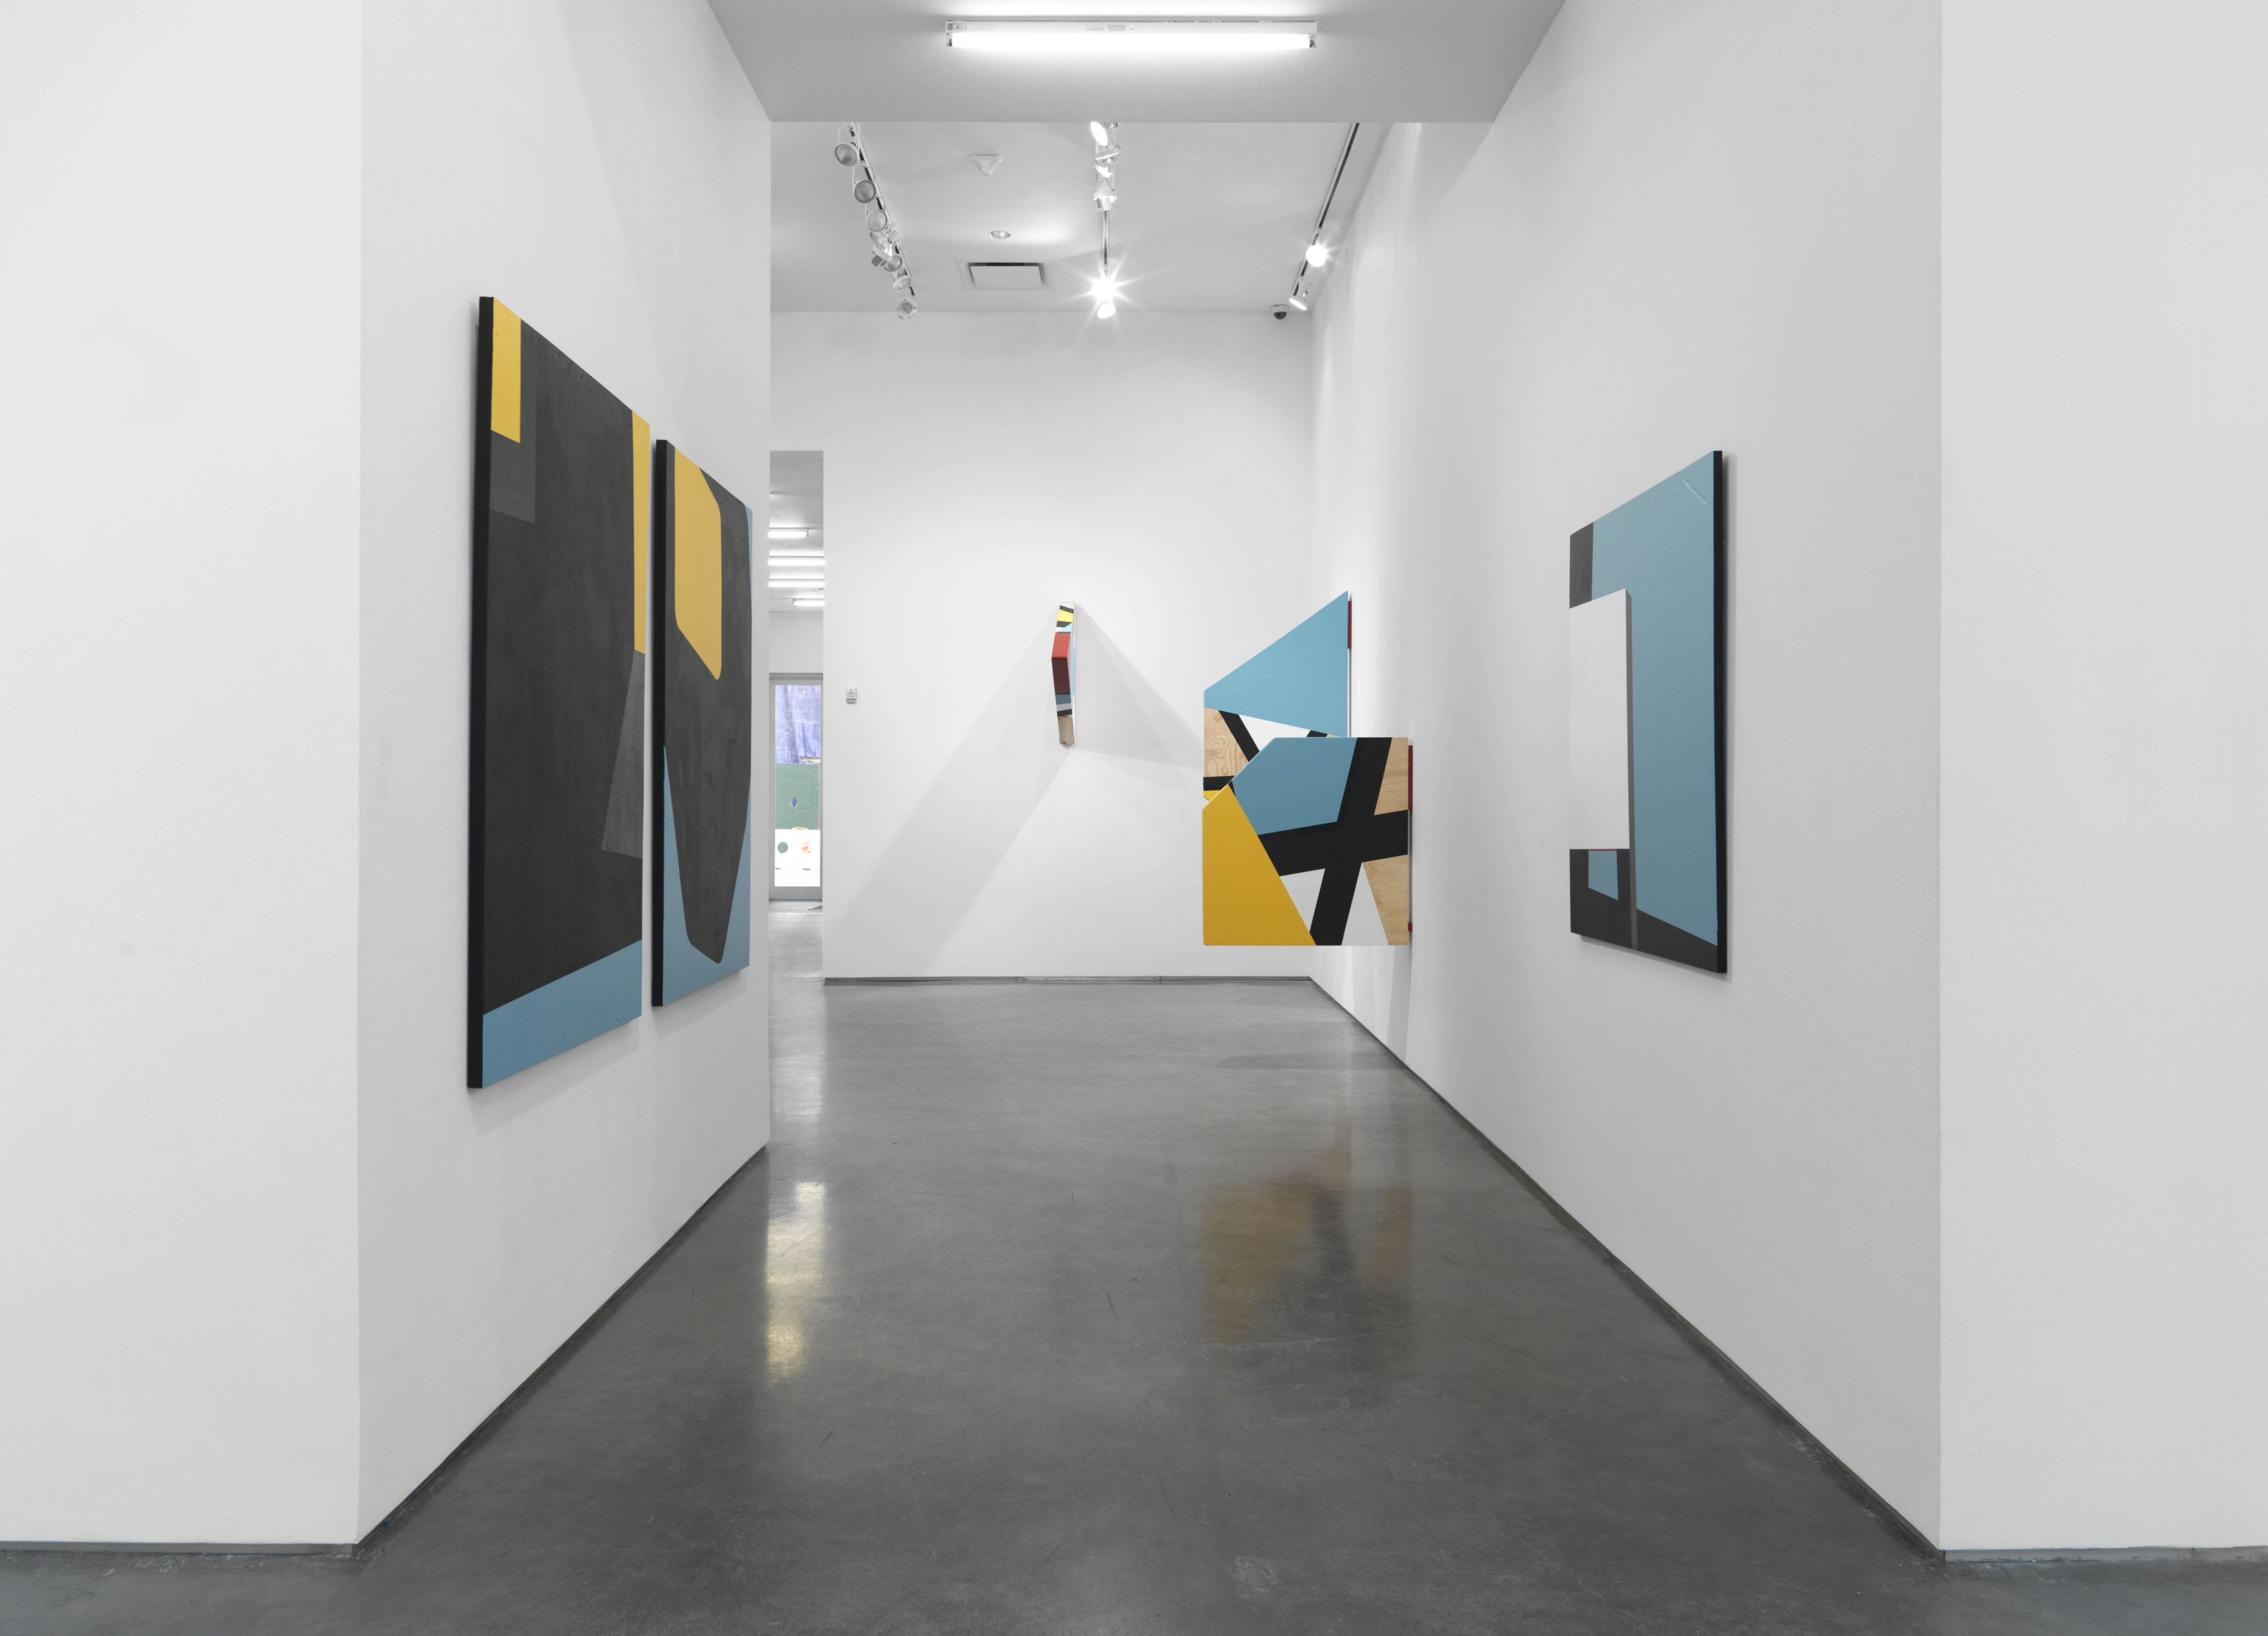 Colour & Form in BLACK(Installation View), Marianne Boesky Gallery, 2016